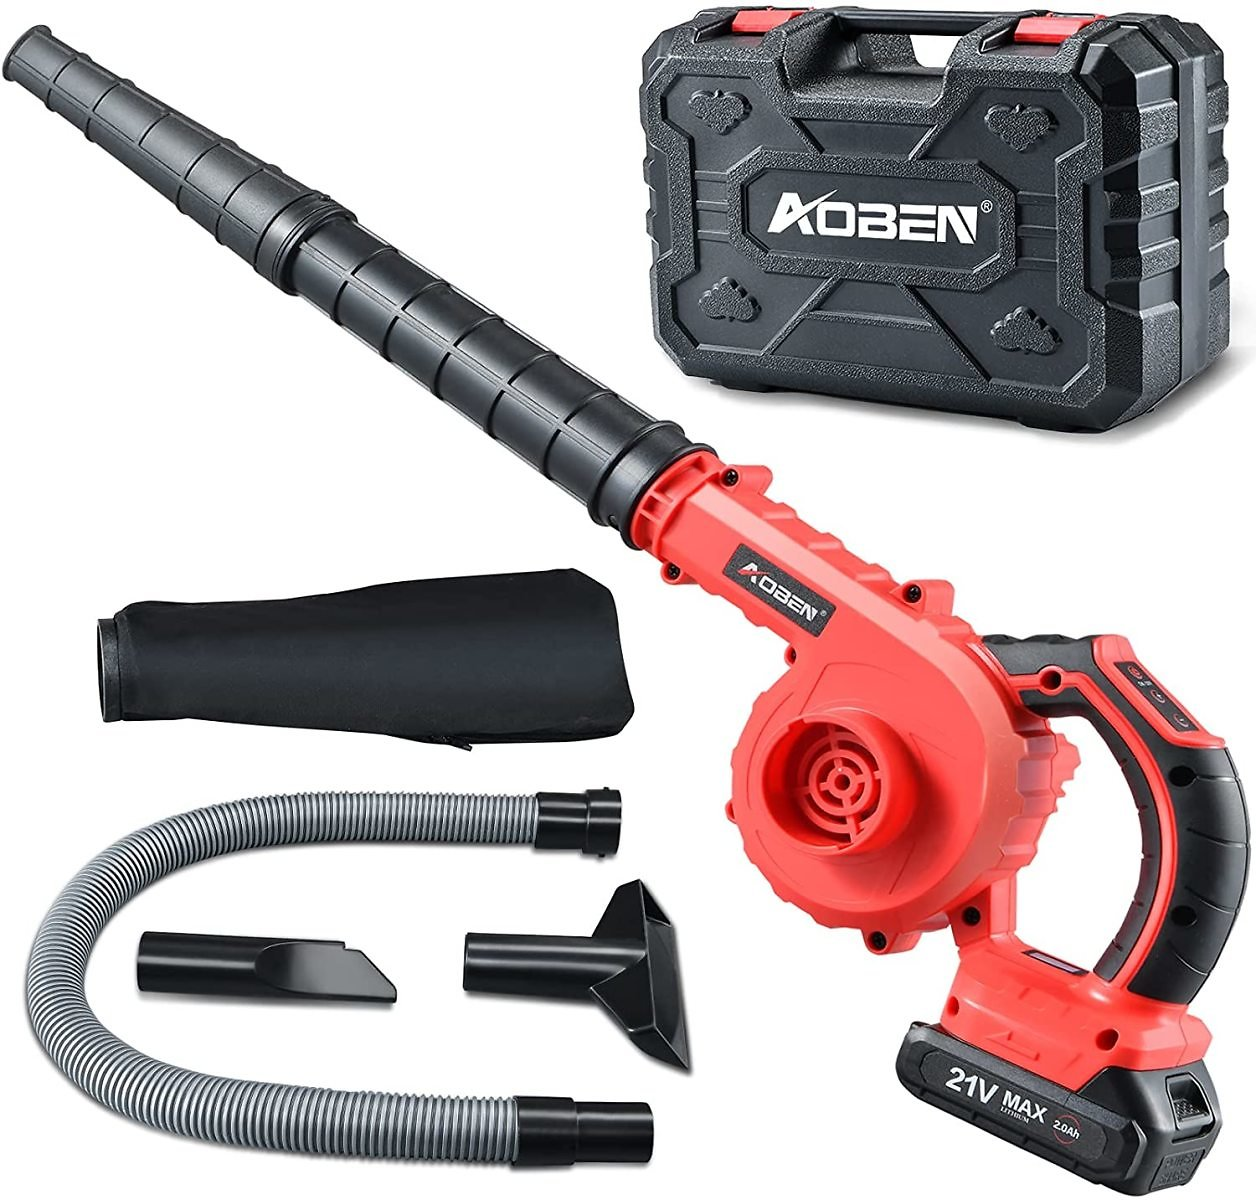 AOBEN 150 MPH Cordless Leaf Blower with Battery & Charger for $39.99